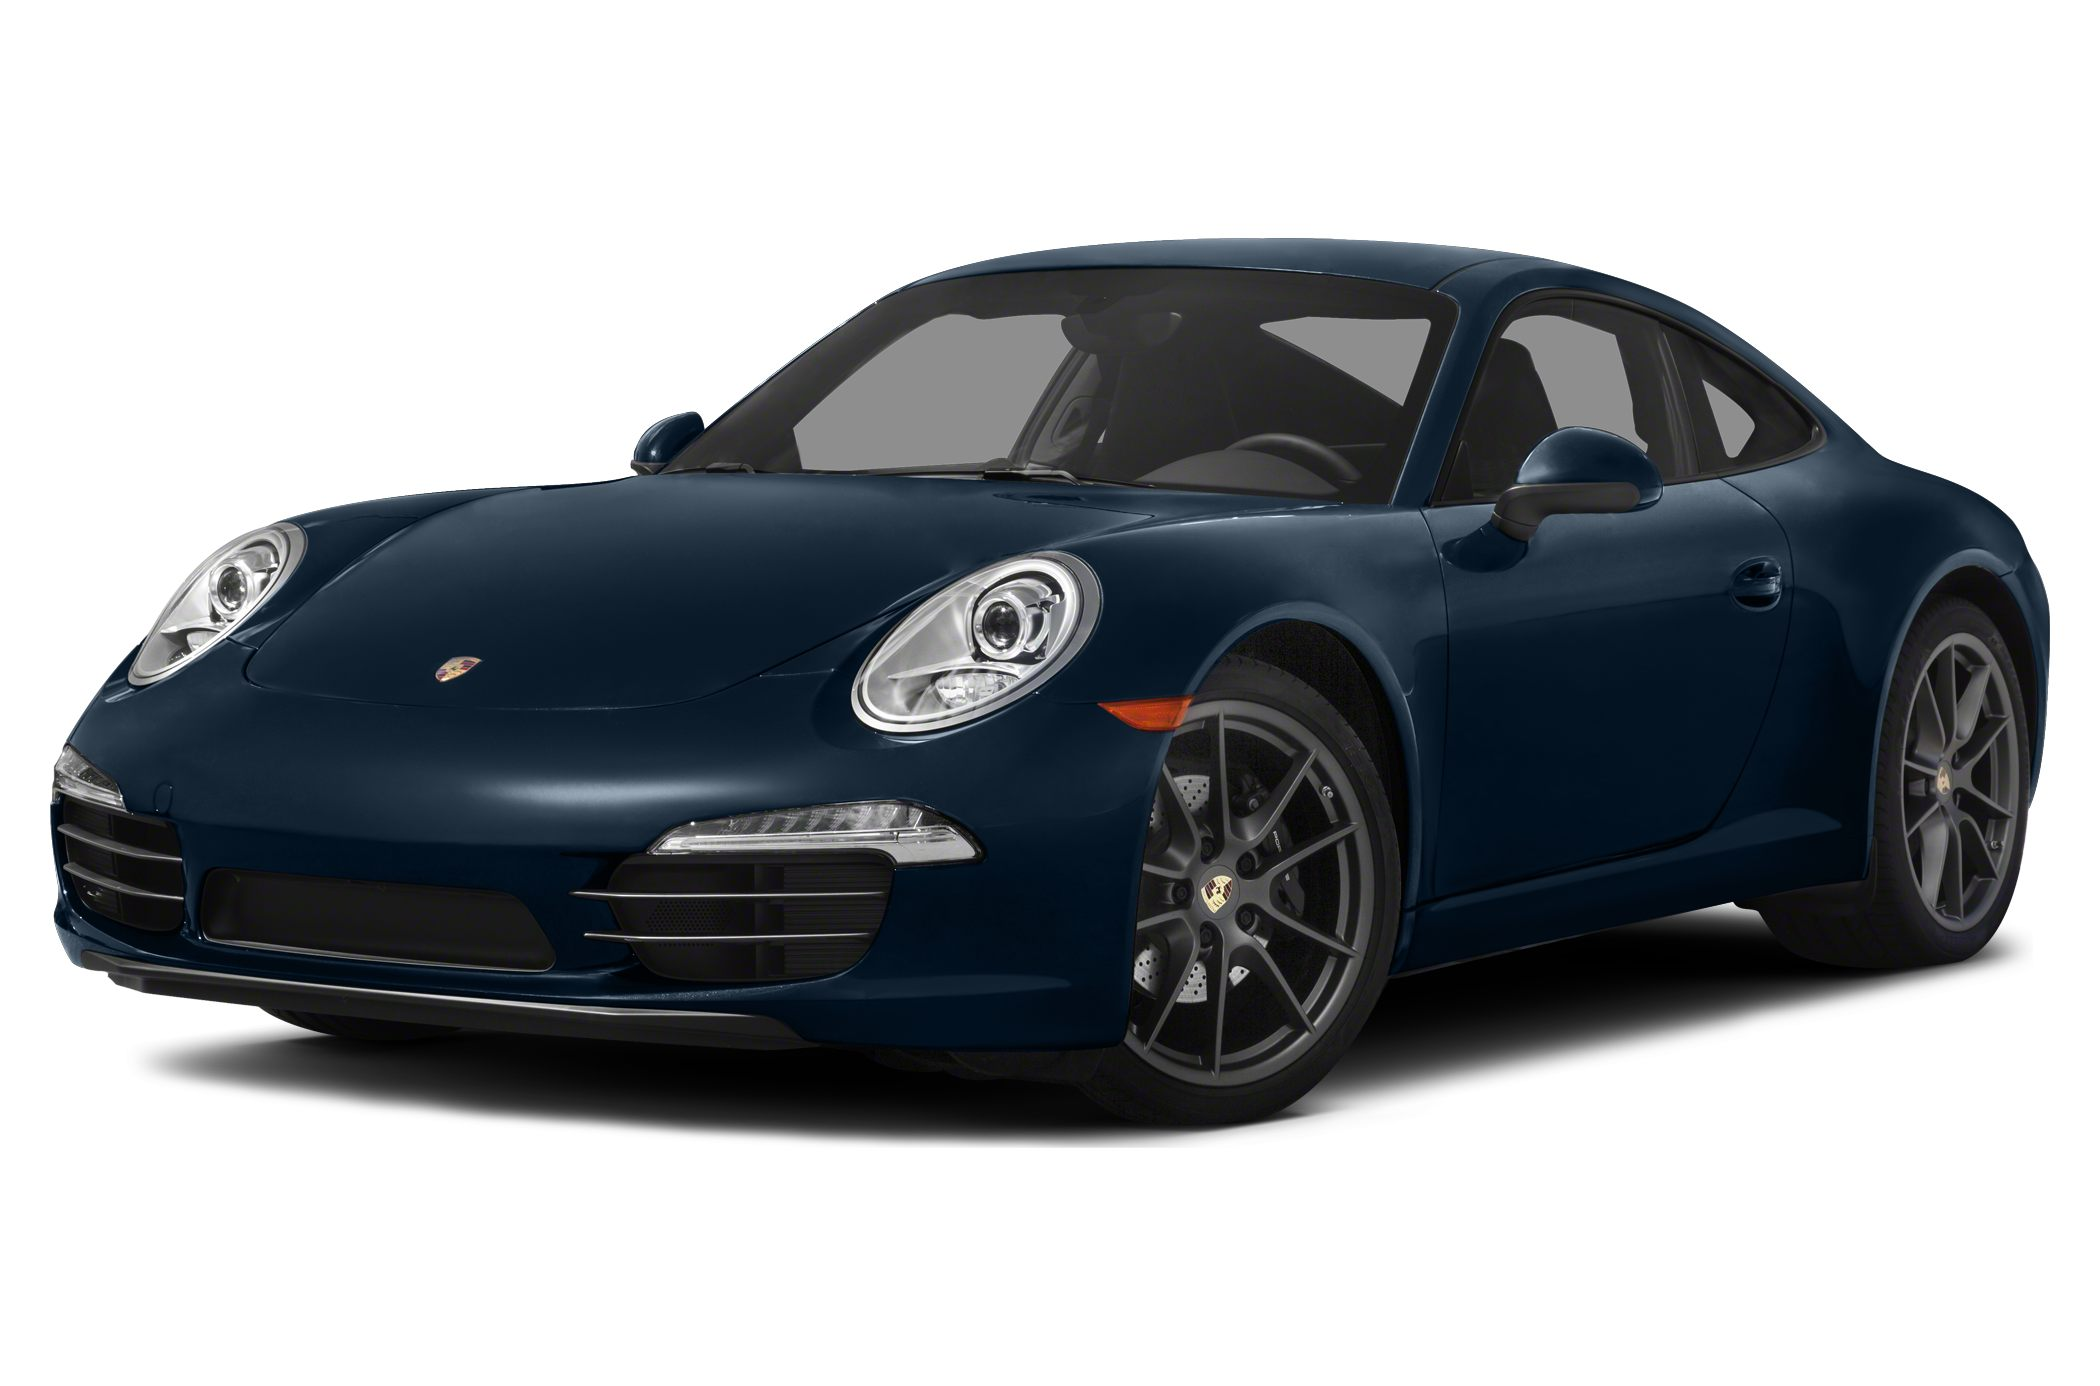 2013 Porsche 911 Carrera 2dr Rear wheel Drive Coupe Pricing and Options